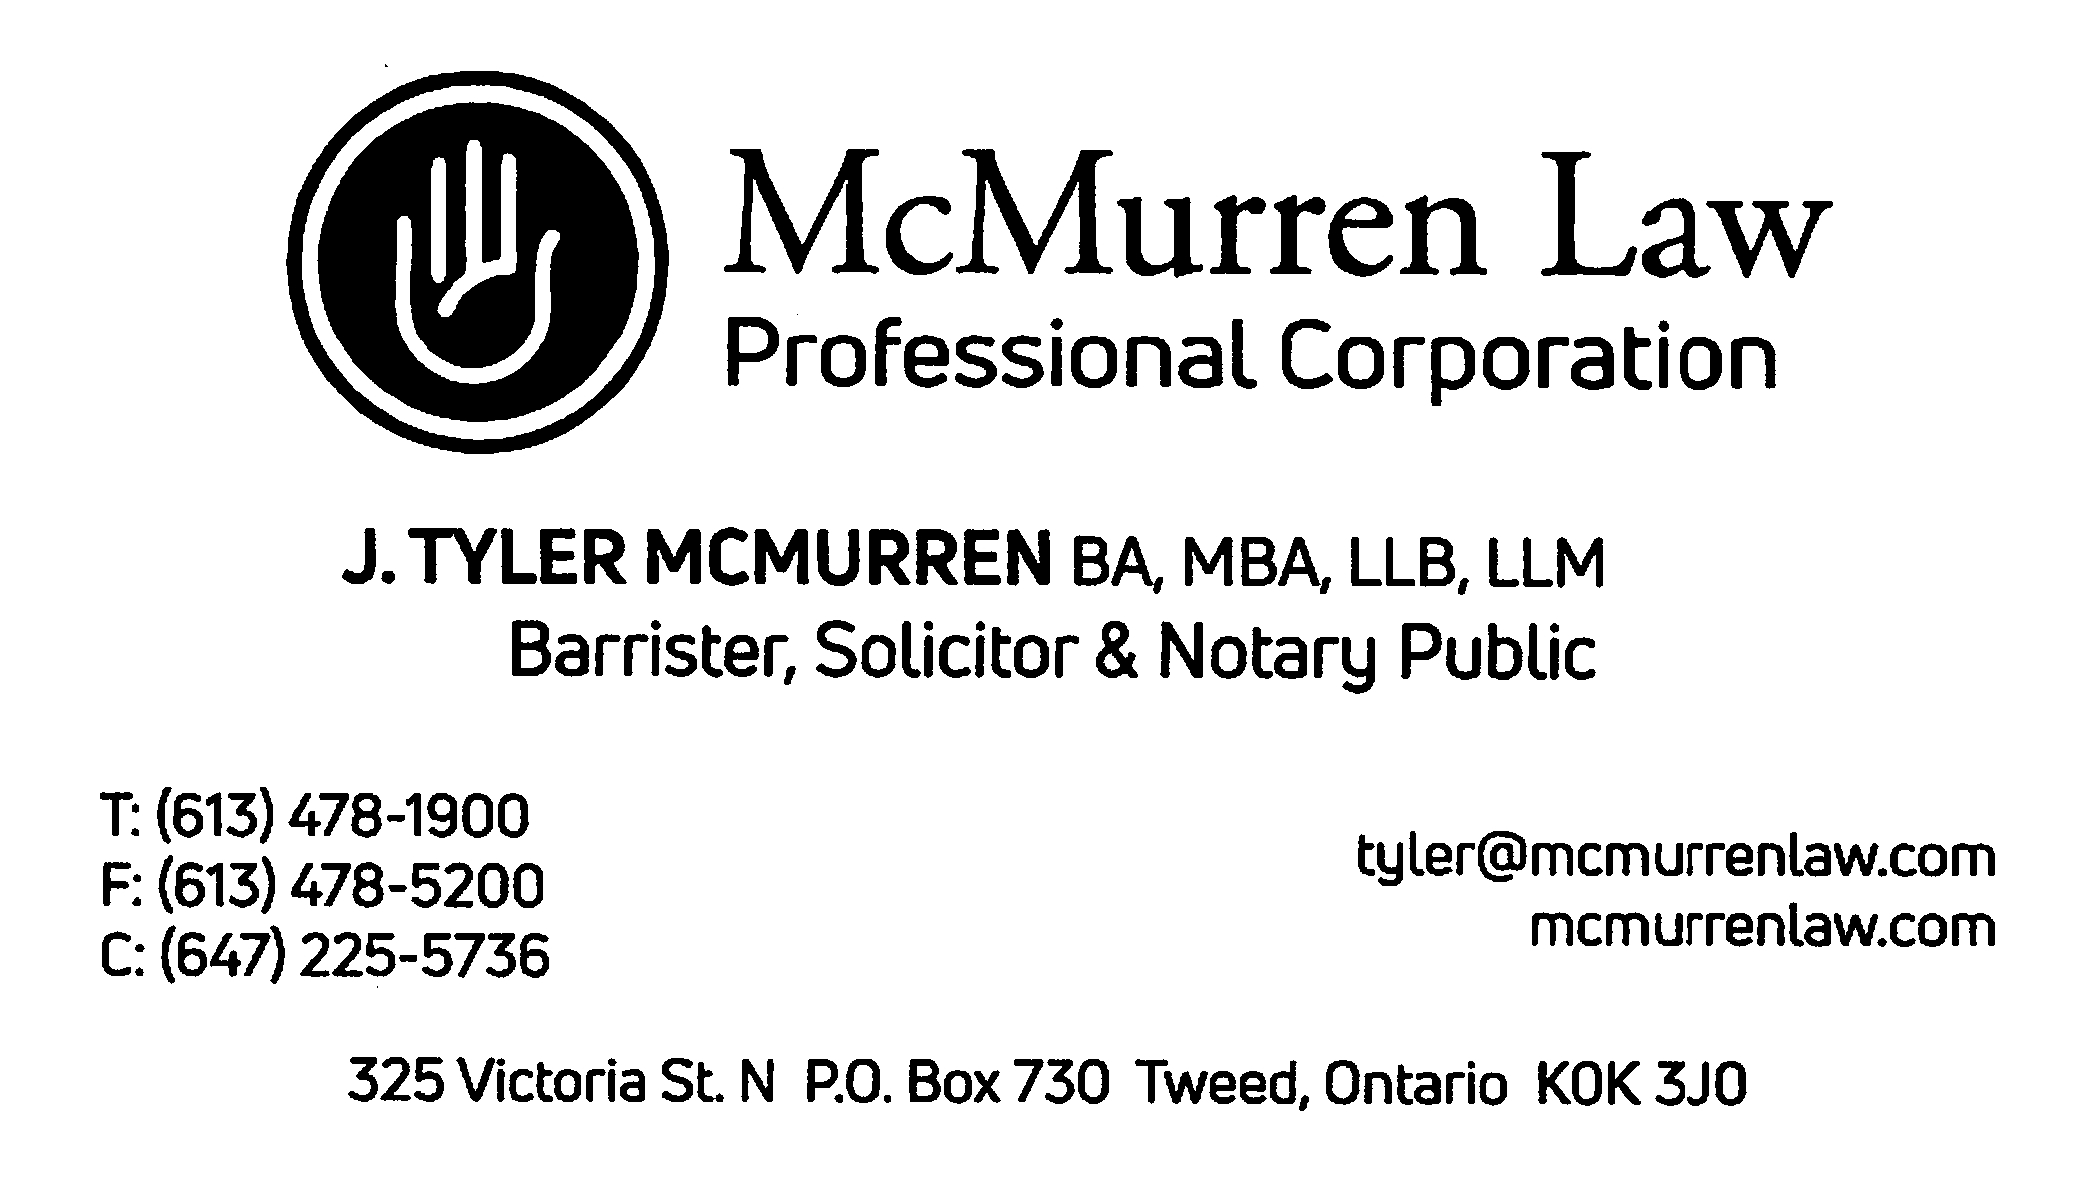 McMurren Law Professional Corporation